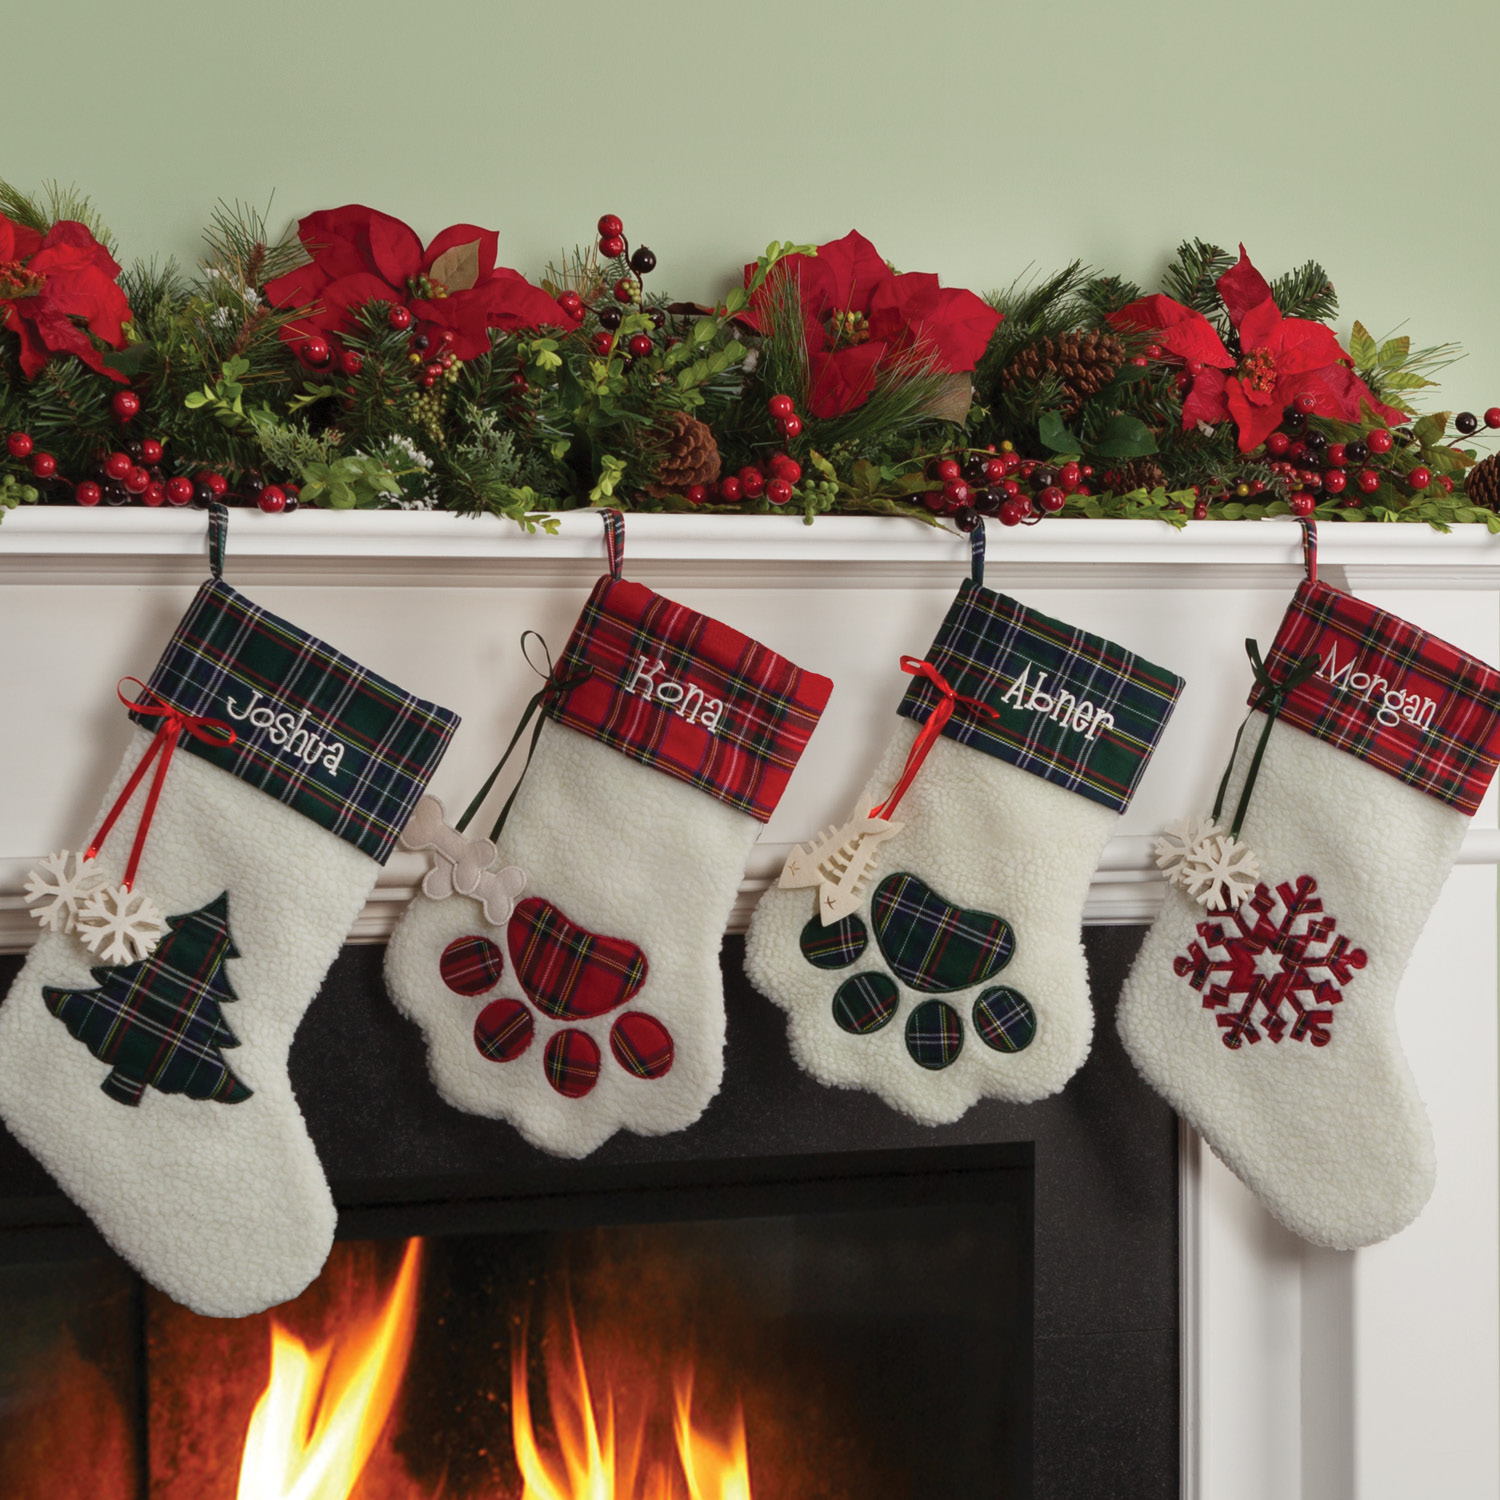 Personalized Dog Paw, Cat Paw and Snowflake Christmas Stockings